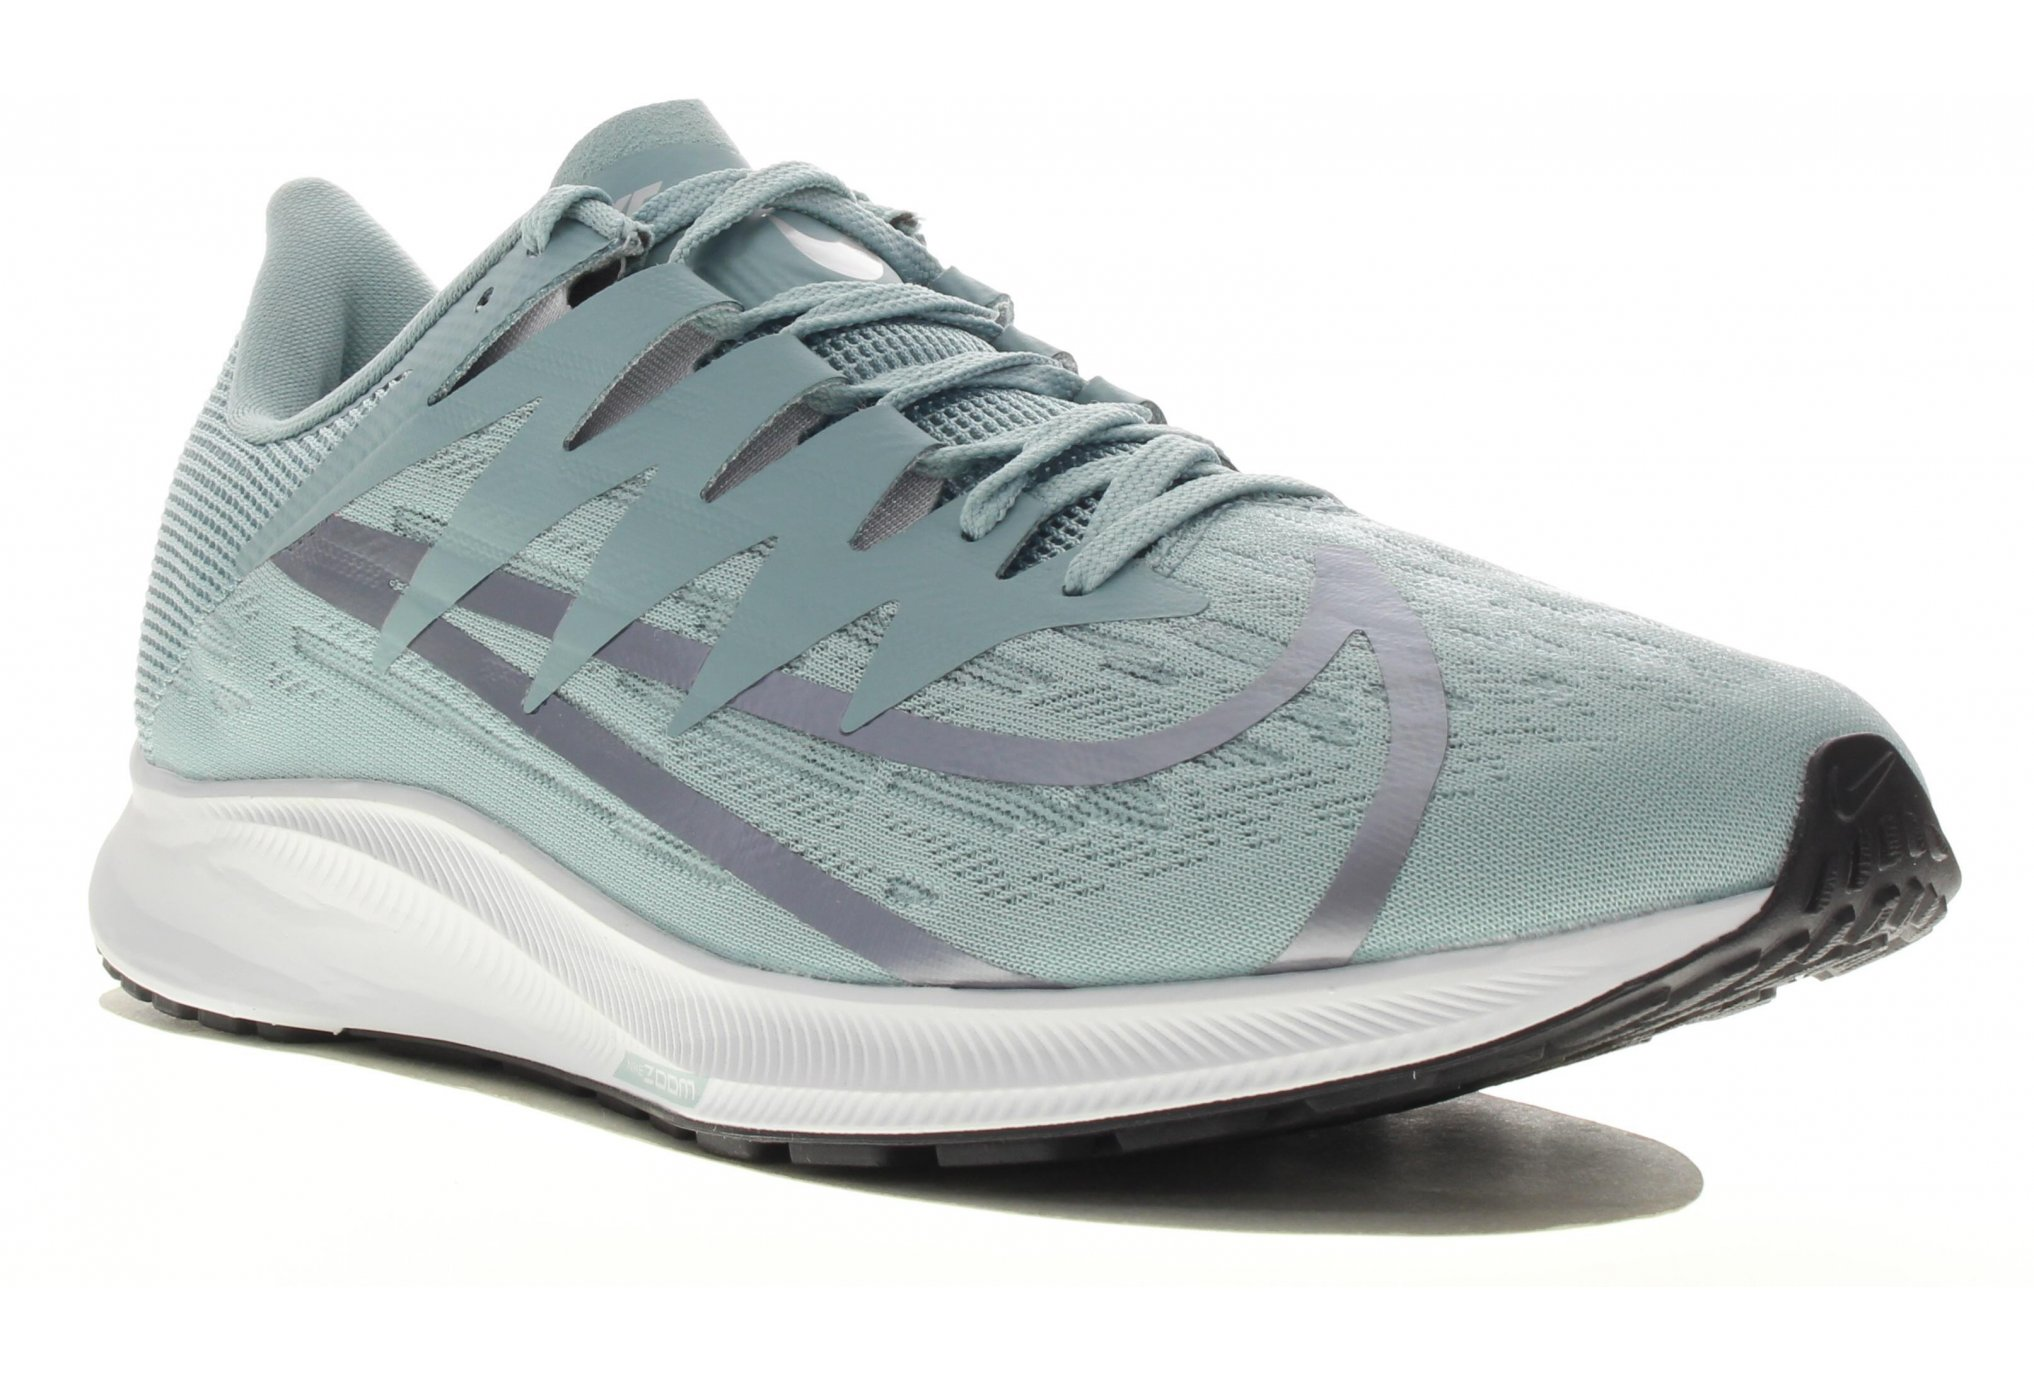 Nike Zoom Rival Fly Chaussures running femme